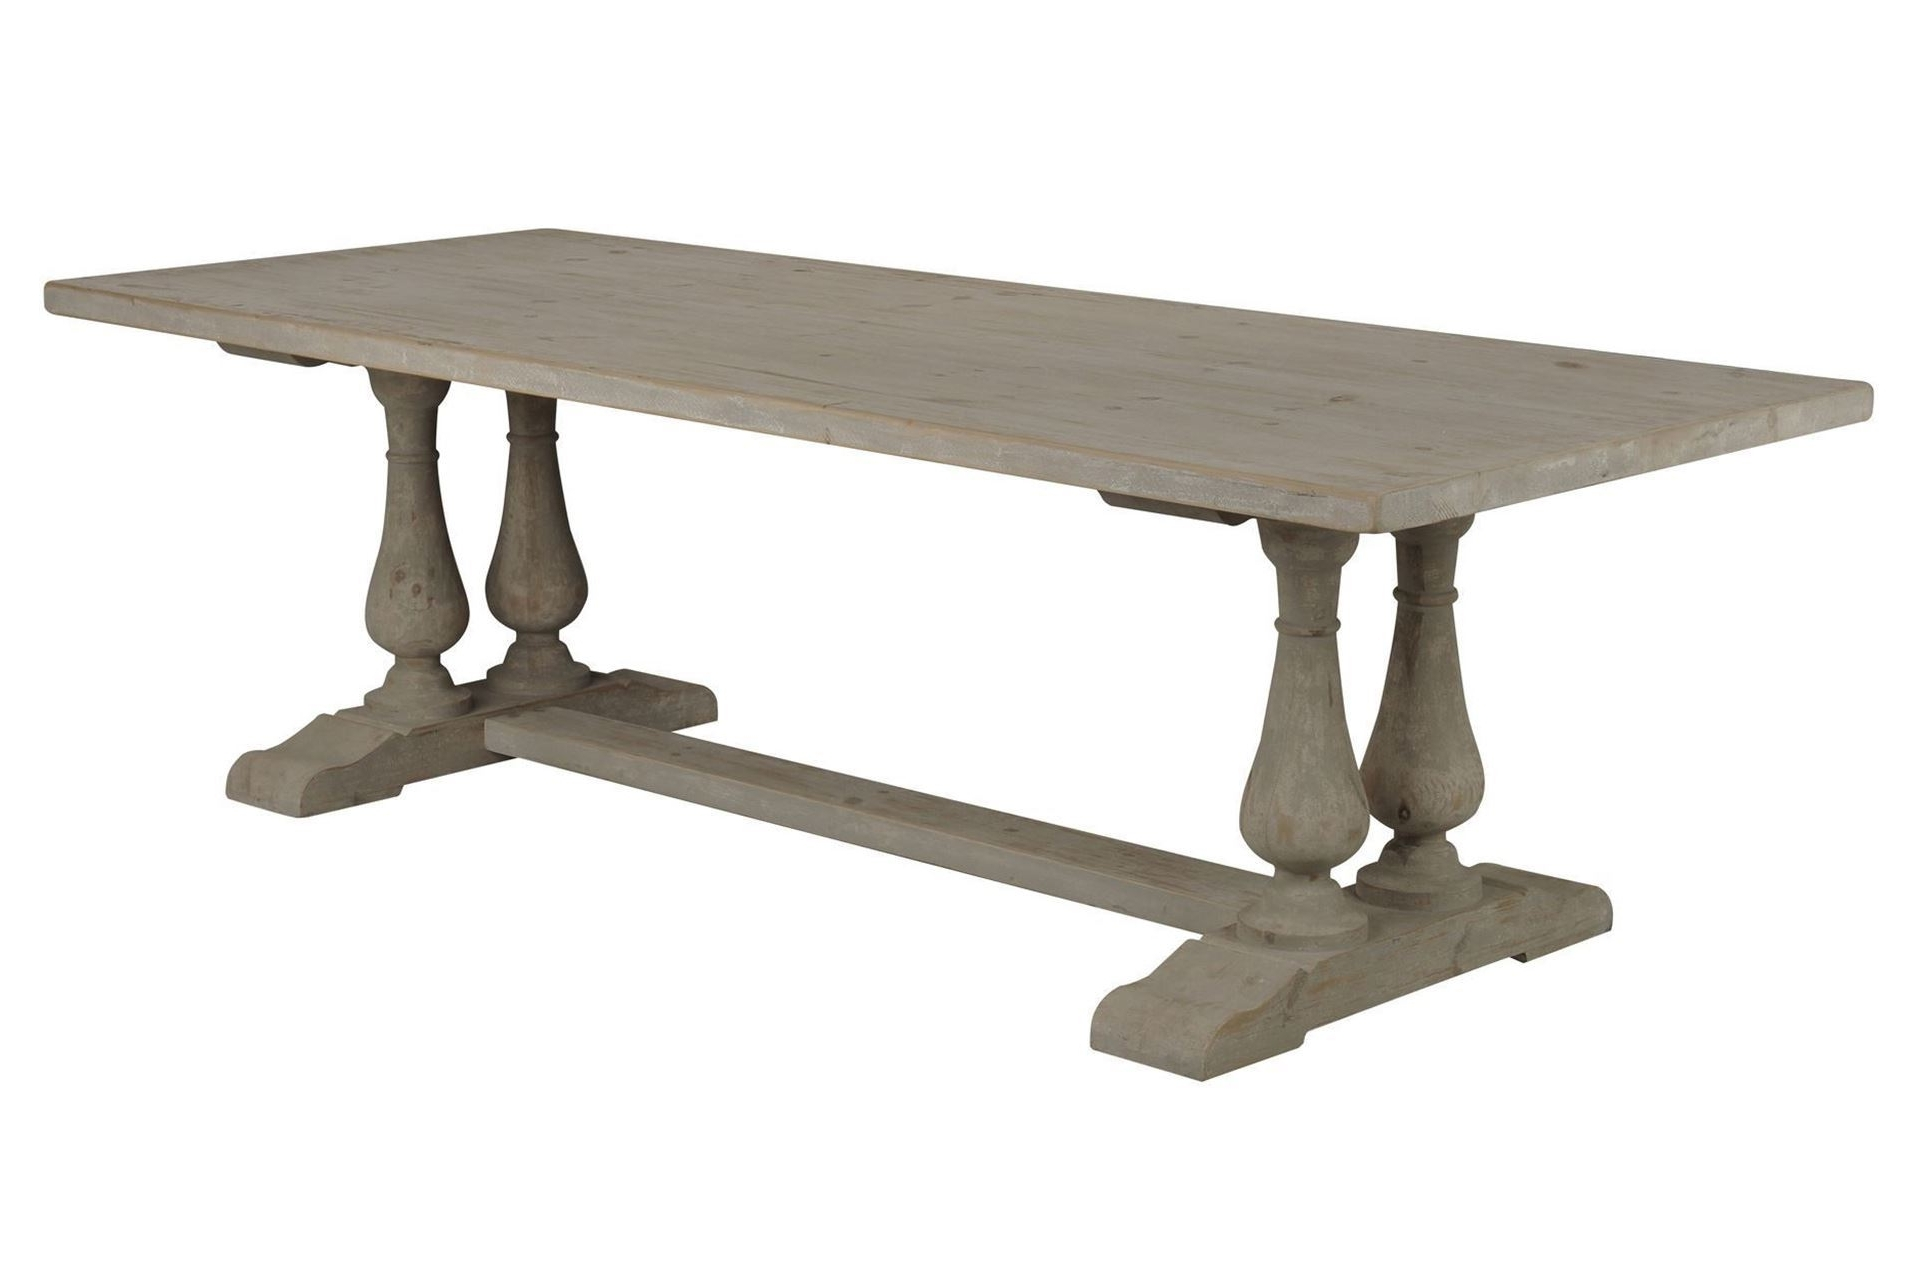 Newest Magnolia Home Shop Floor Dining Tables With Iron Trestle Within Magnolia Home Shop Floor Dining Table With Iron Trestlejoanna (View 20 of 25)